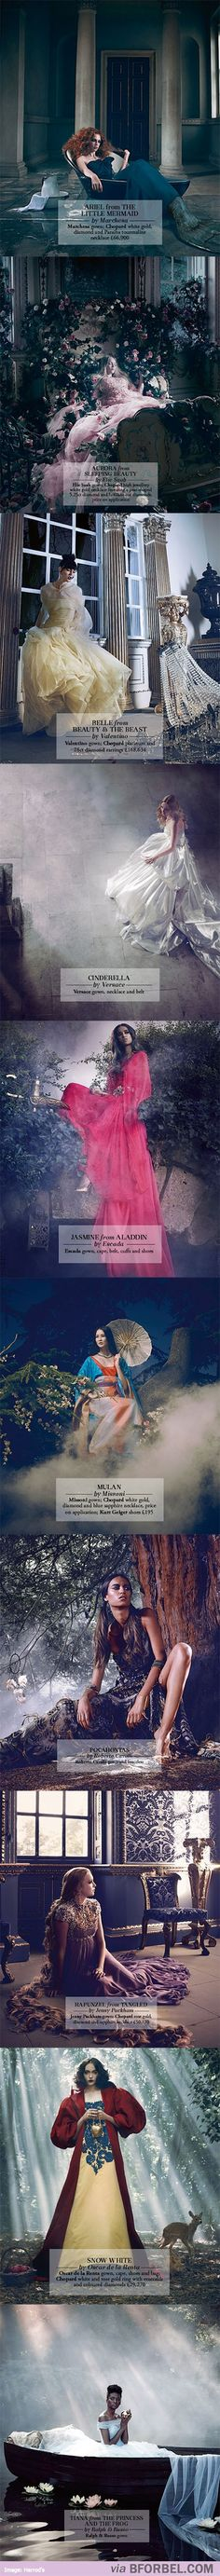 Disney couture! Disney Princess Designer Displays by Harrod's #disney #princess #designer #Harrod